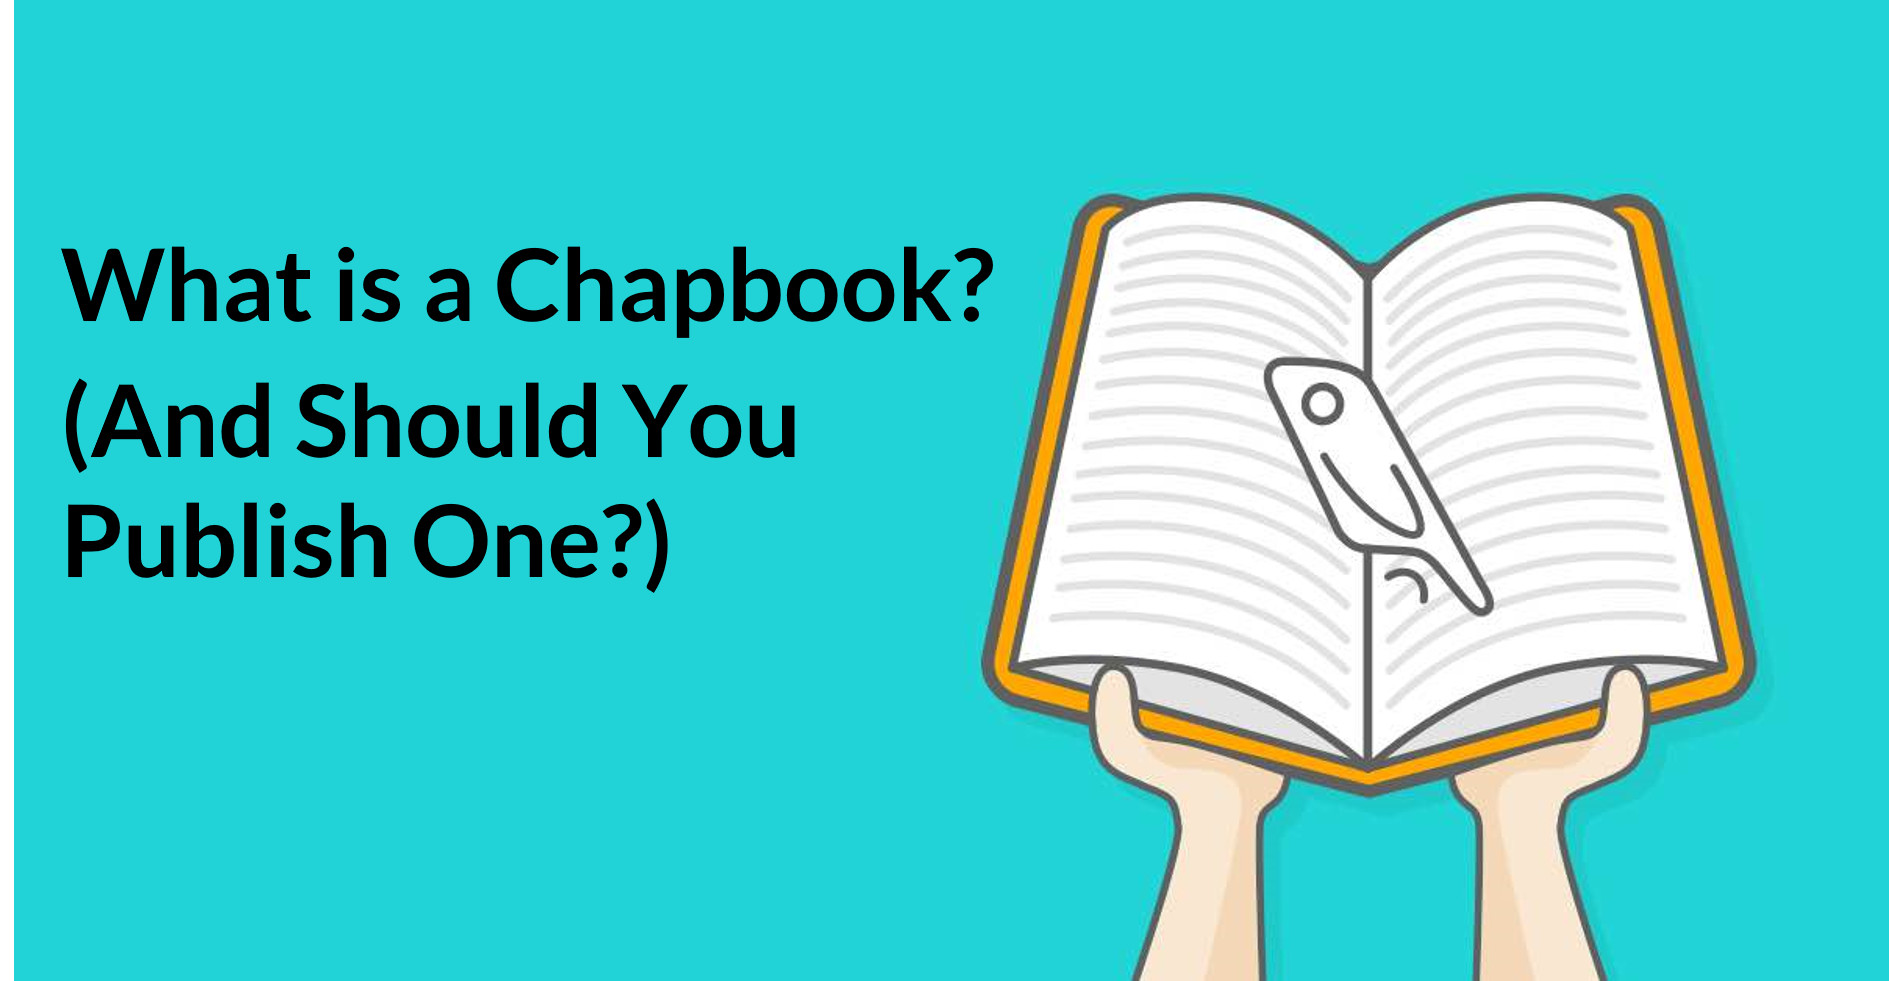 What is a Chapbook? (And Should You Publish One?)